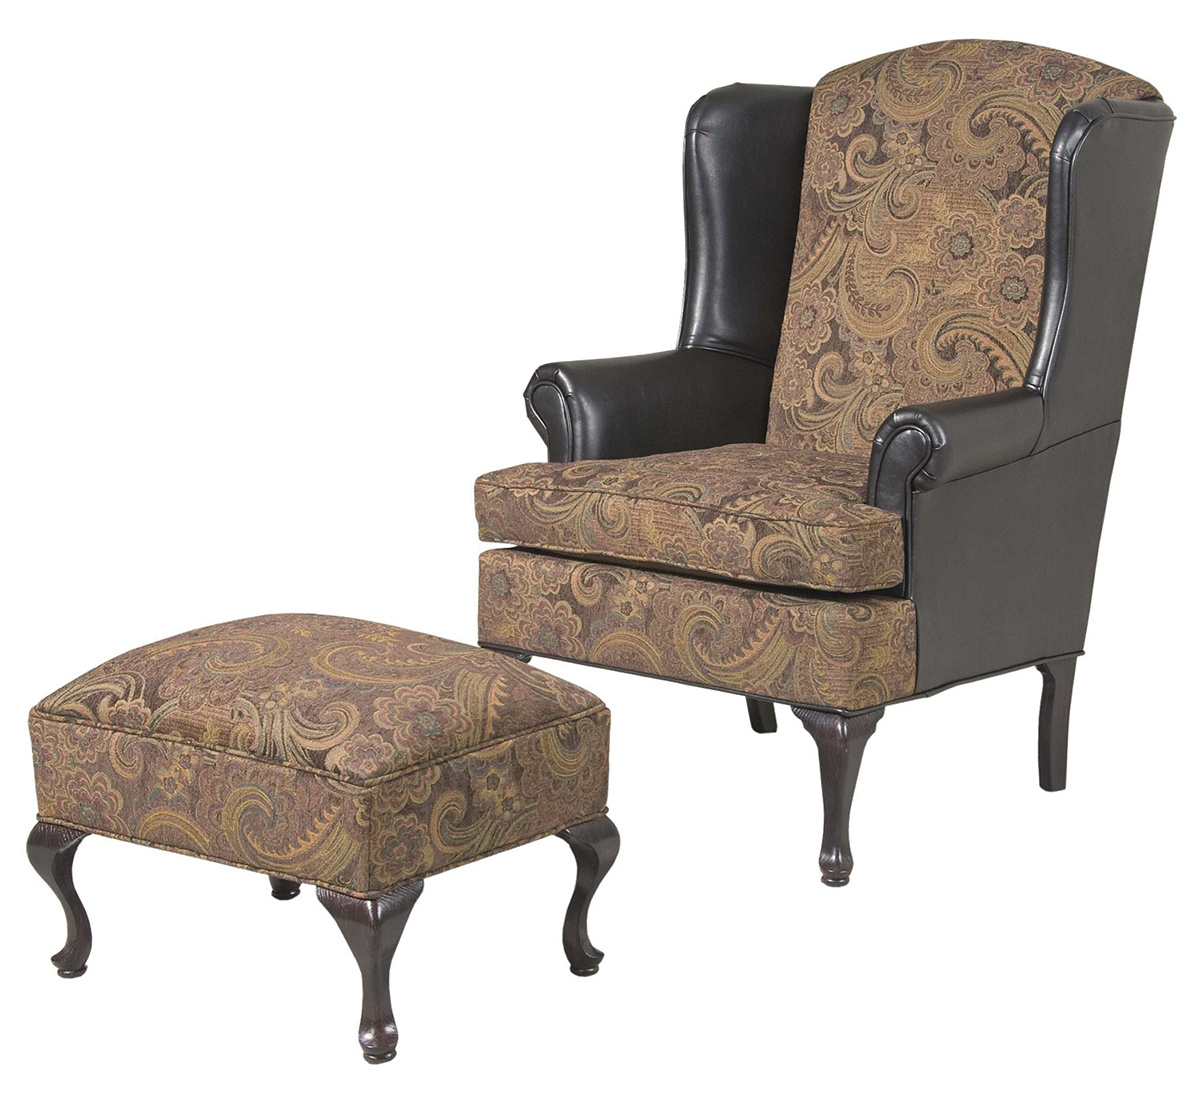 2200SIRA Serta Wing Back Chair